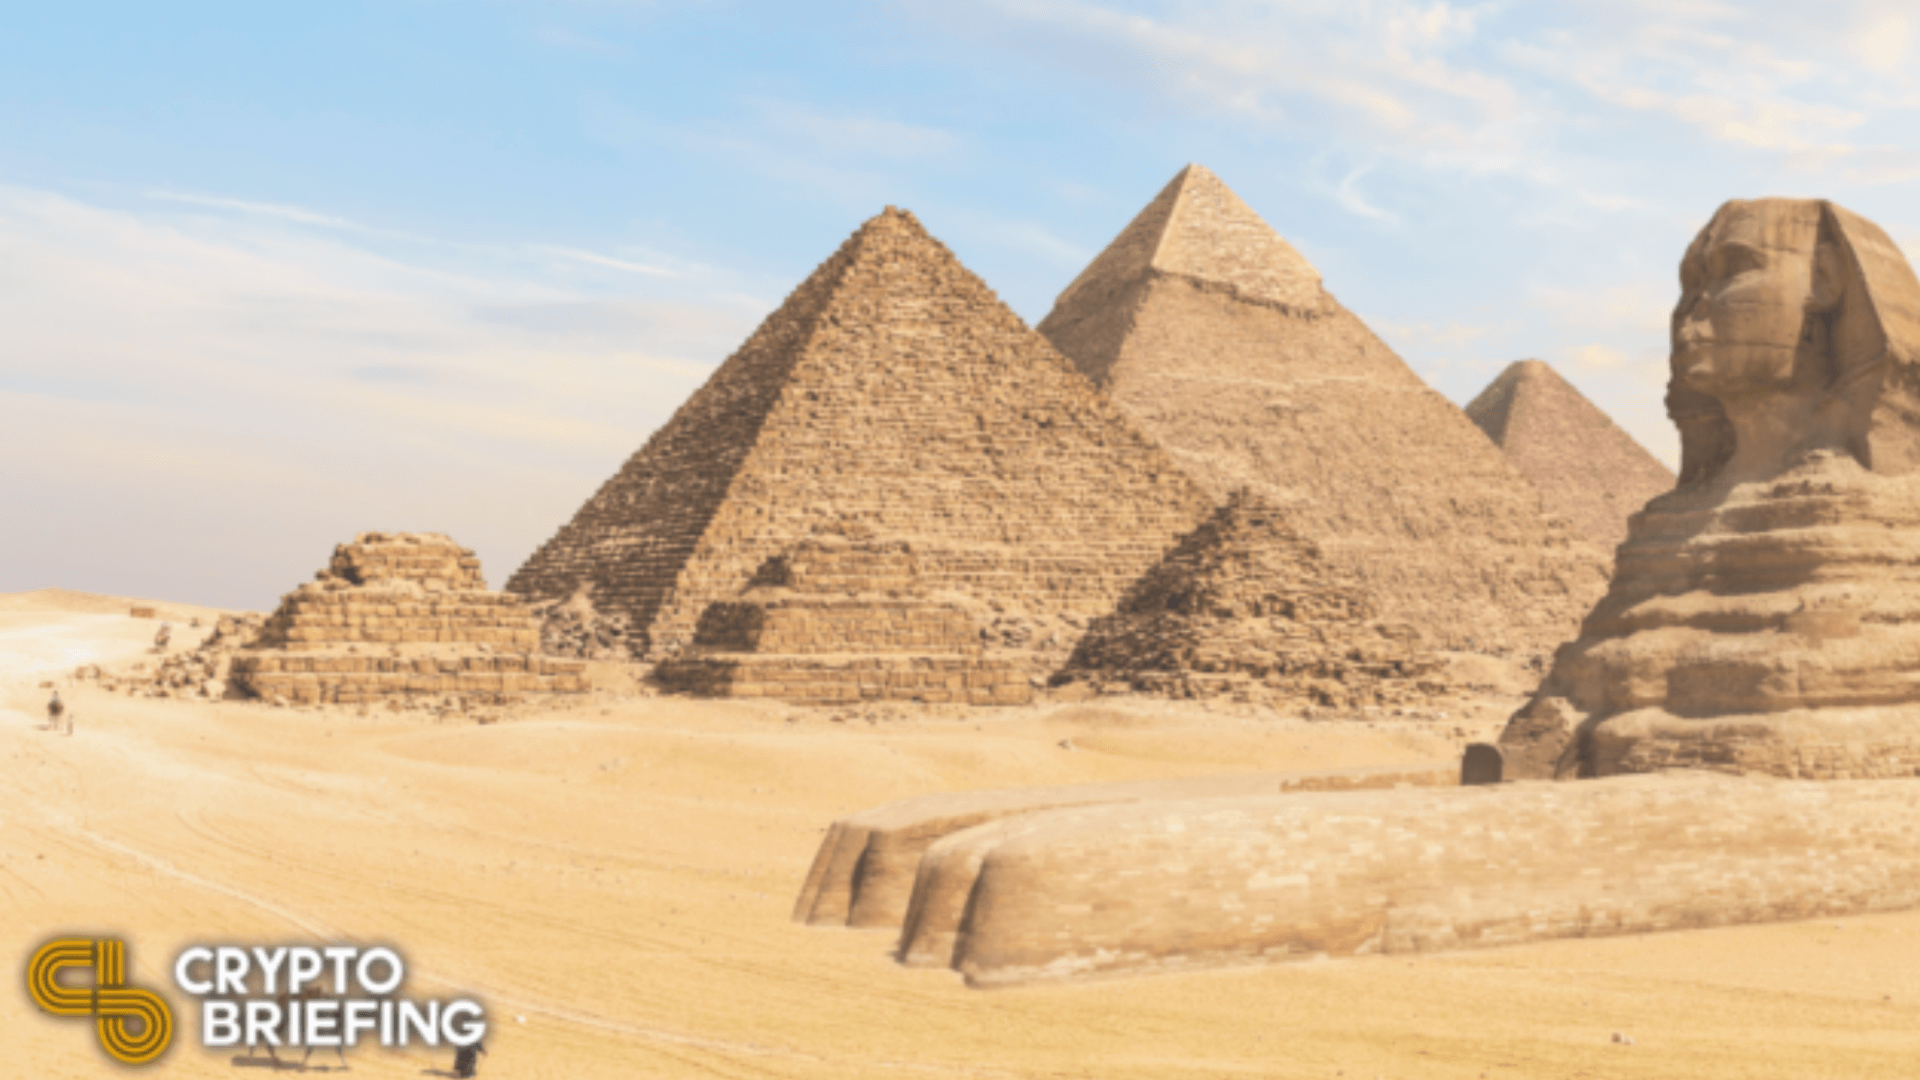 Enjin, Virtual Worlds Bring Ancient Egypt to the Metaverse